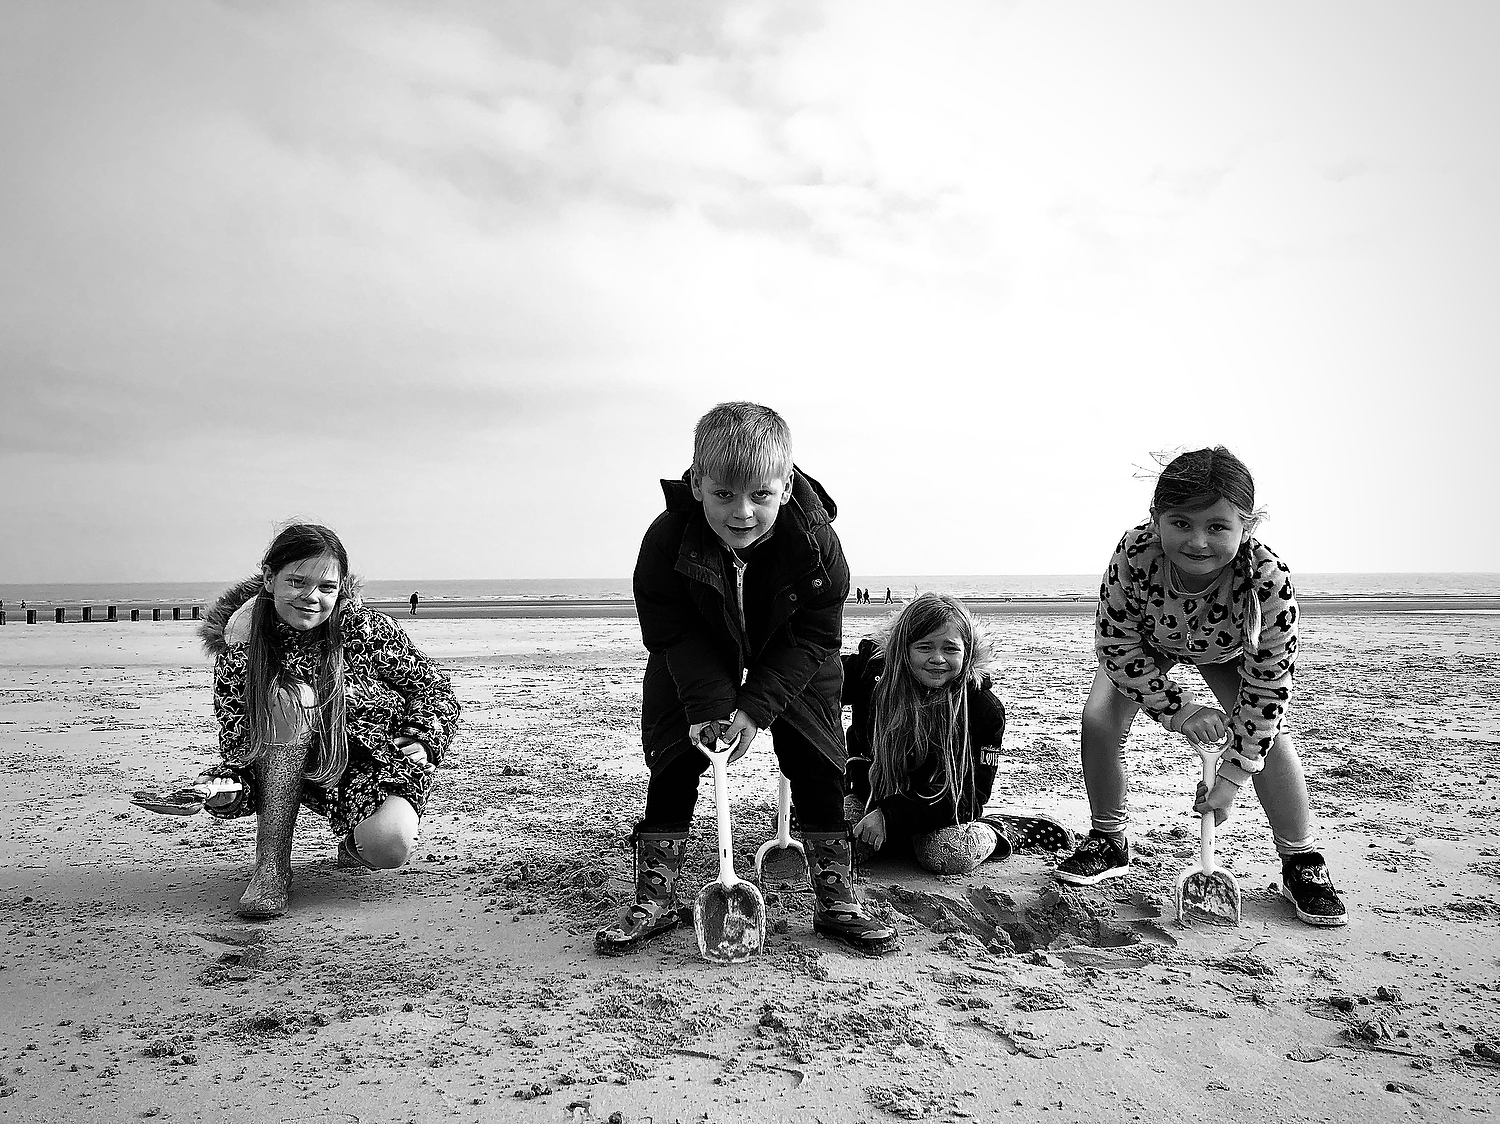 TAKE AWESOME IPHONE PHOTOS OF YOUR KIDS BLACK AND WHITE SIBLINGS BEACH SCENE SANDCASTLES